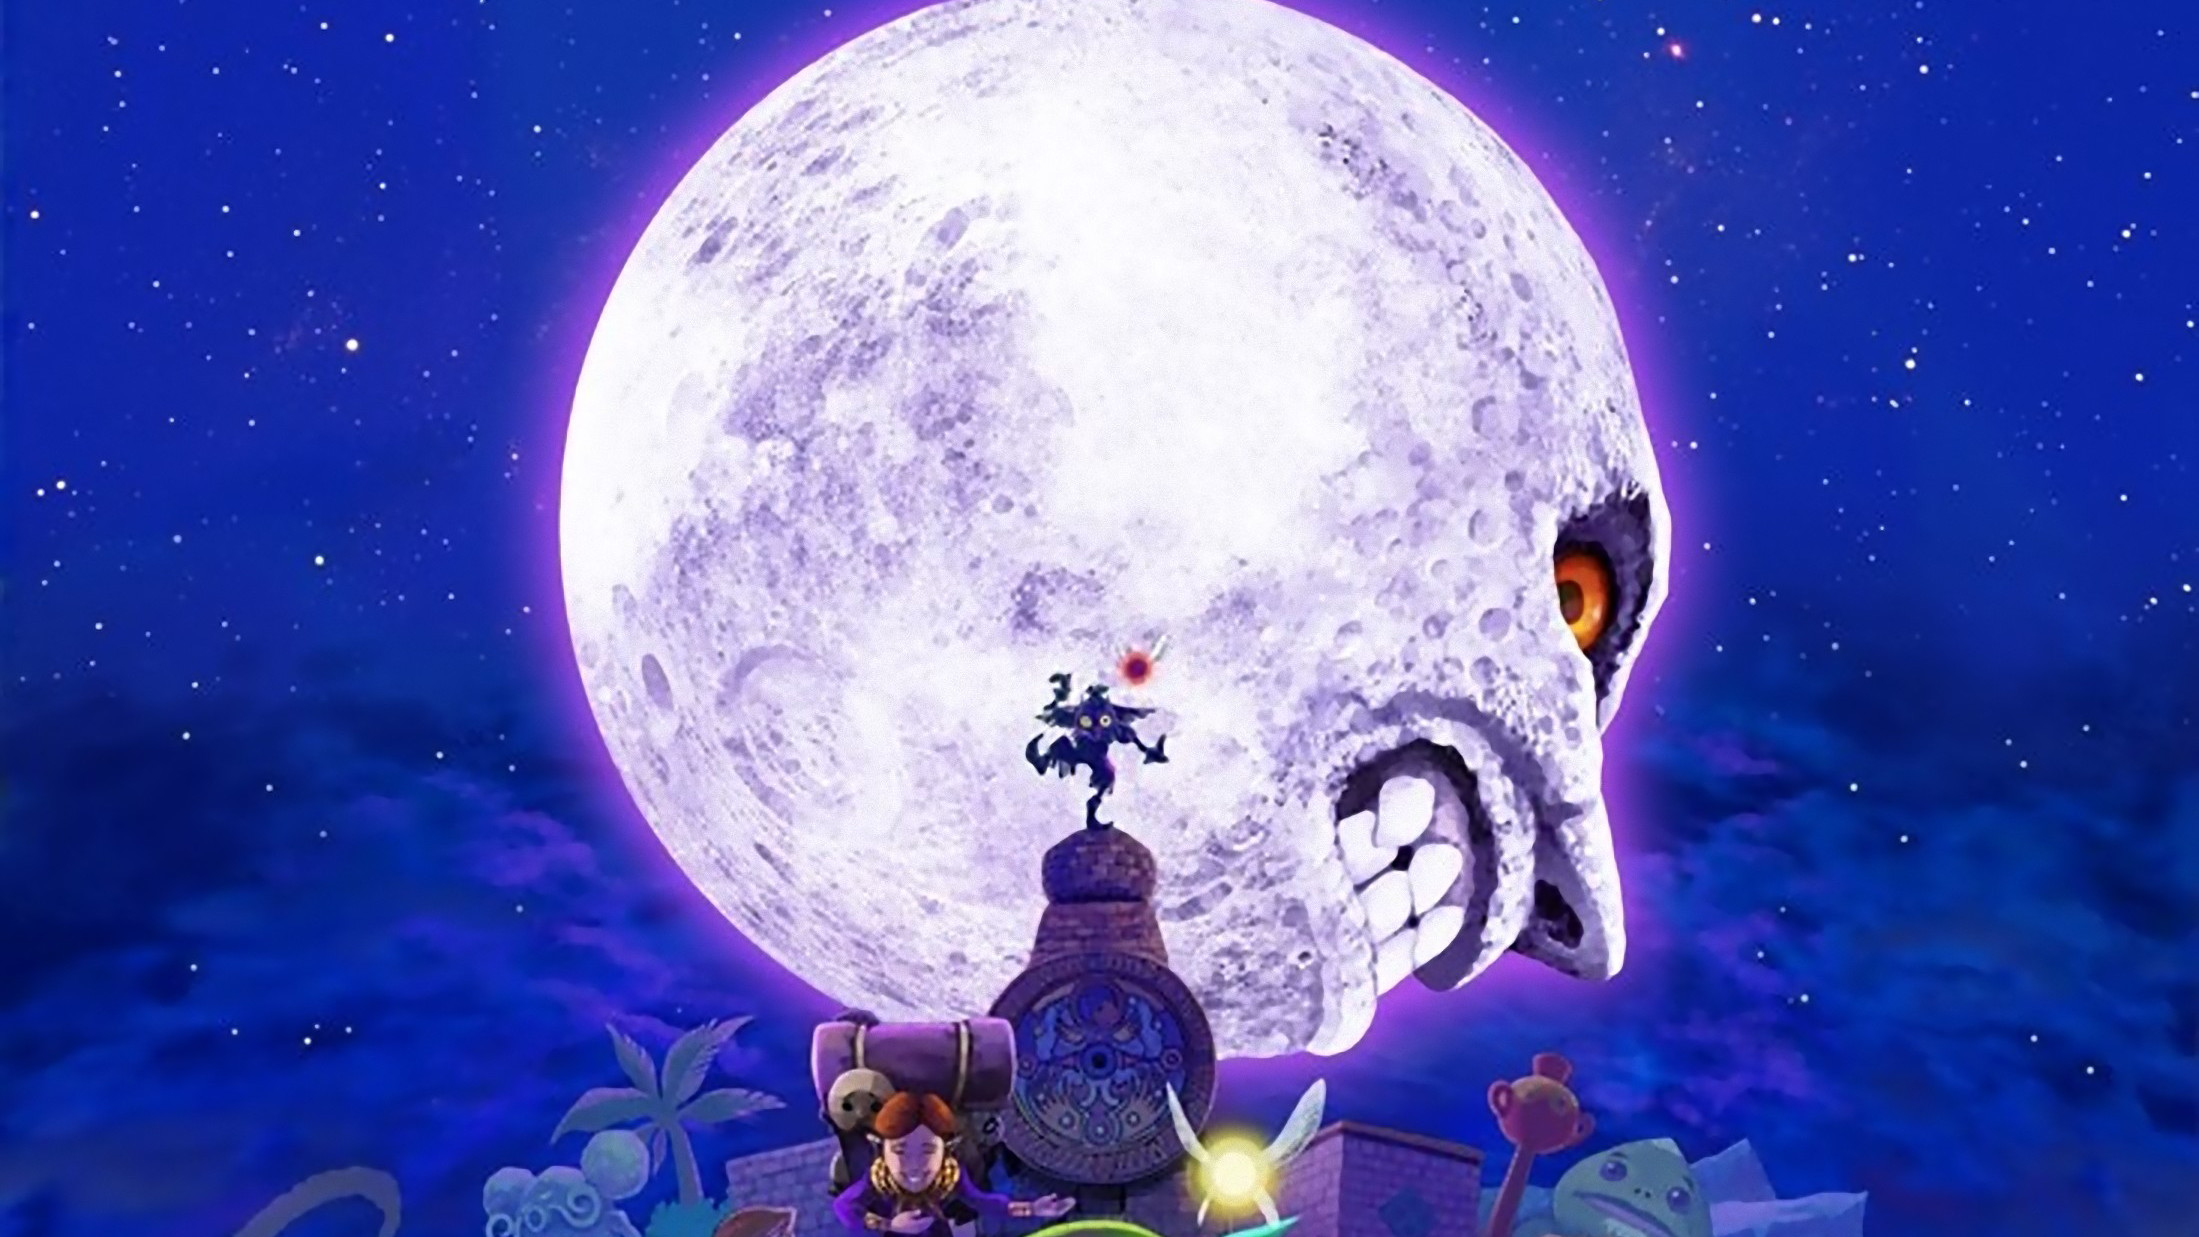 Skull Kid Wallpaper: Majoras Mask Wallpaper (81+ Images